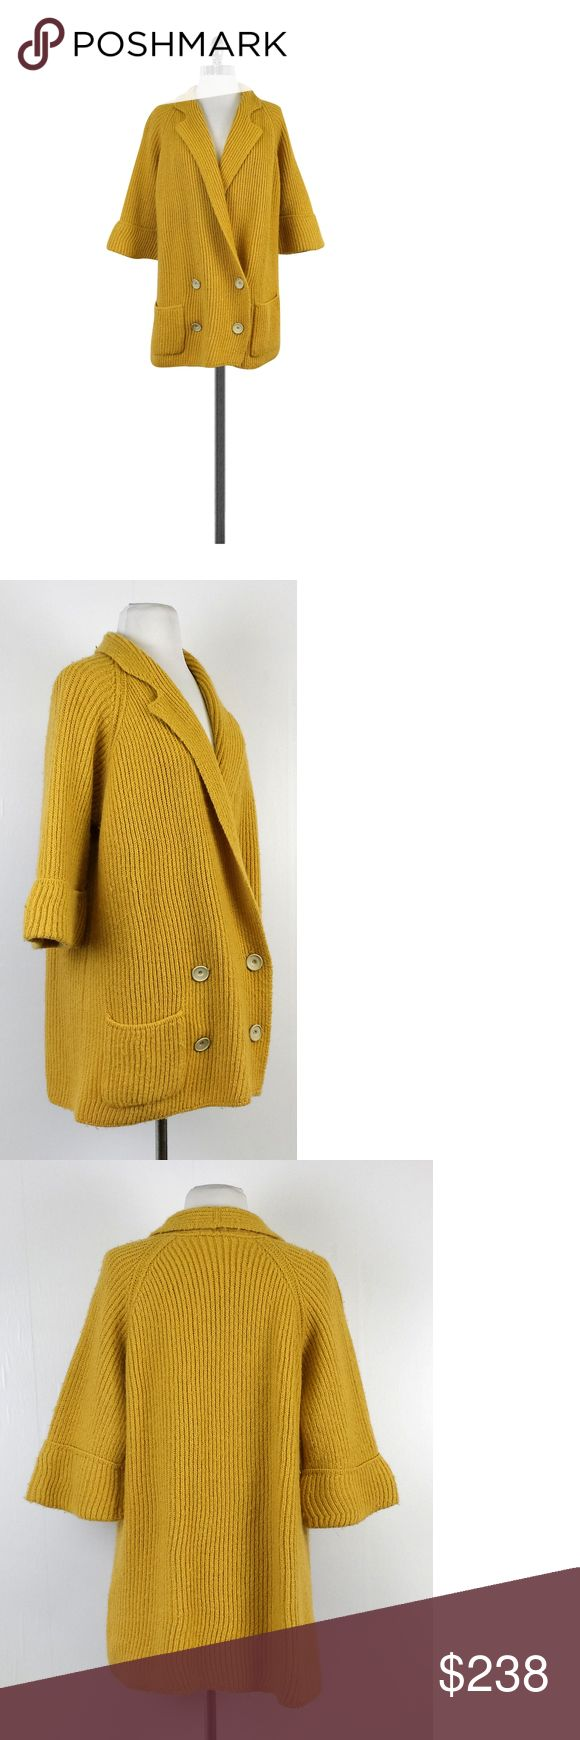 "Chloe- Mustard Yellow Oversized Knitted Cardigan Sz S Oversized cardigan to keep you warm and warm mustard yellow color to keep you happy in the winter. Pair with black knee high boots & skinny jeans for a trendy look. Size S 70% alpaca 30% wool Made in Italy Linted Short sleeves w/foldover cuffs Double front buttons 2 front open hip pockets Priced as is Shoulder to hem 29"" Chloe is a French fashion house that has been in the business for decades. Chloe prides itself in luxury ready-to-wear…"